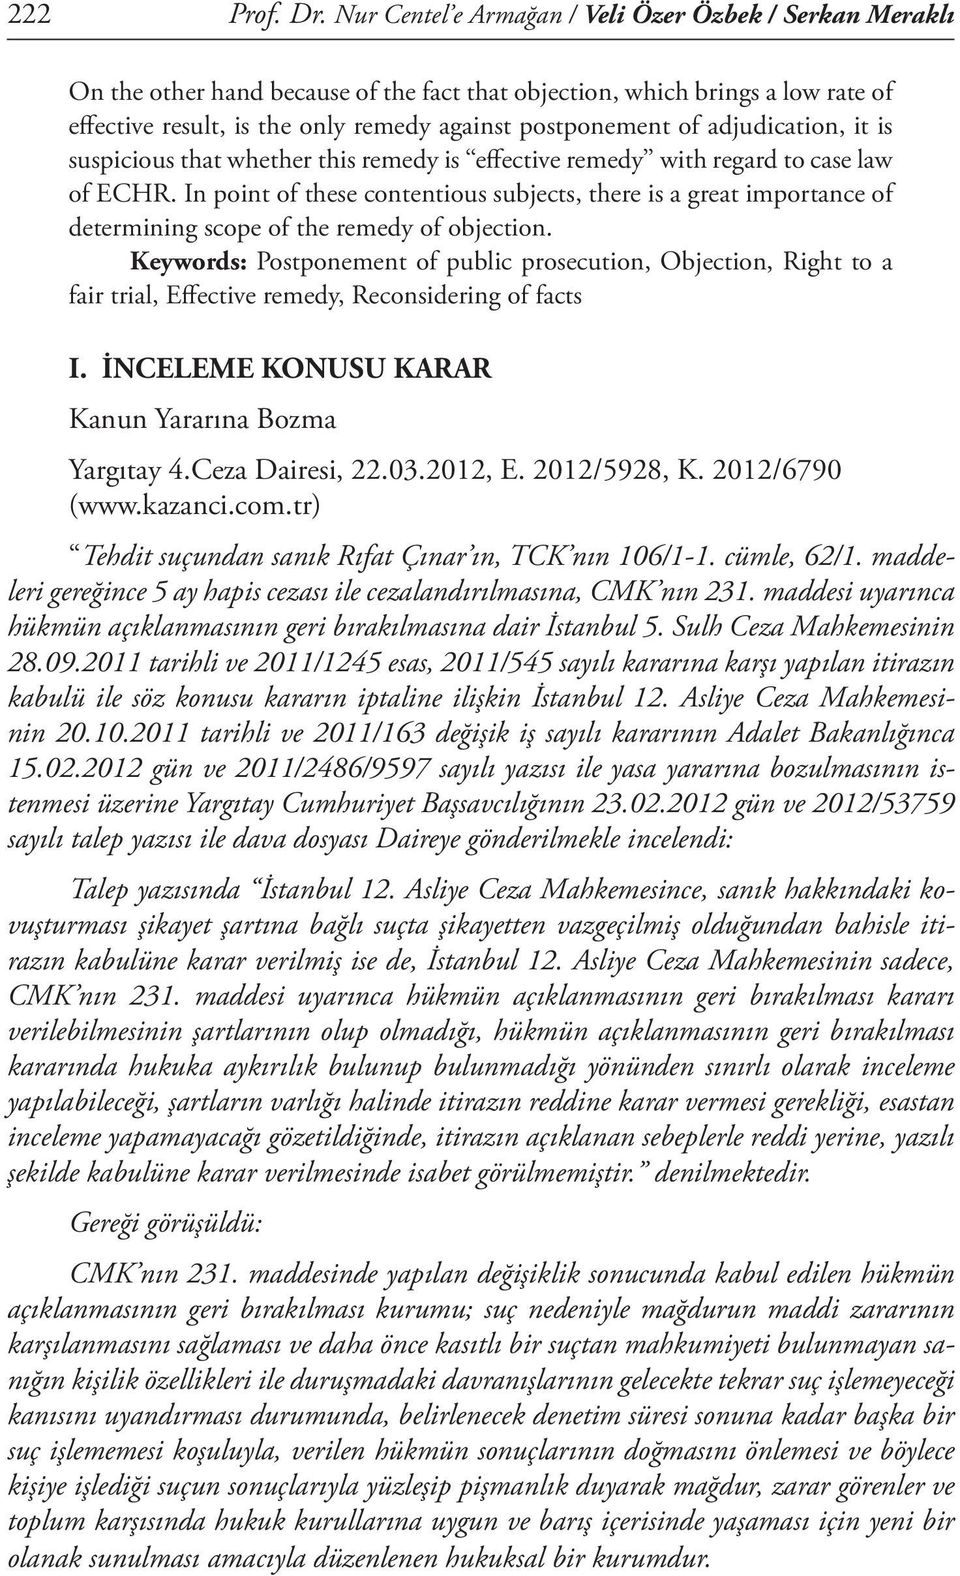 adjudication, it is suspicious that whether this remedy is effective remedy with regard to case law of ECHR.